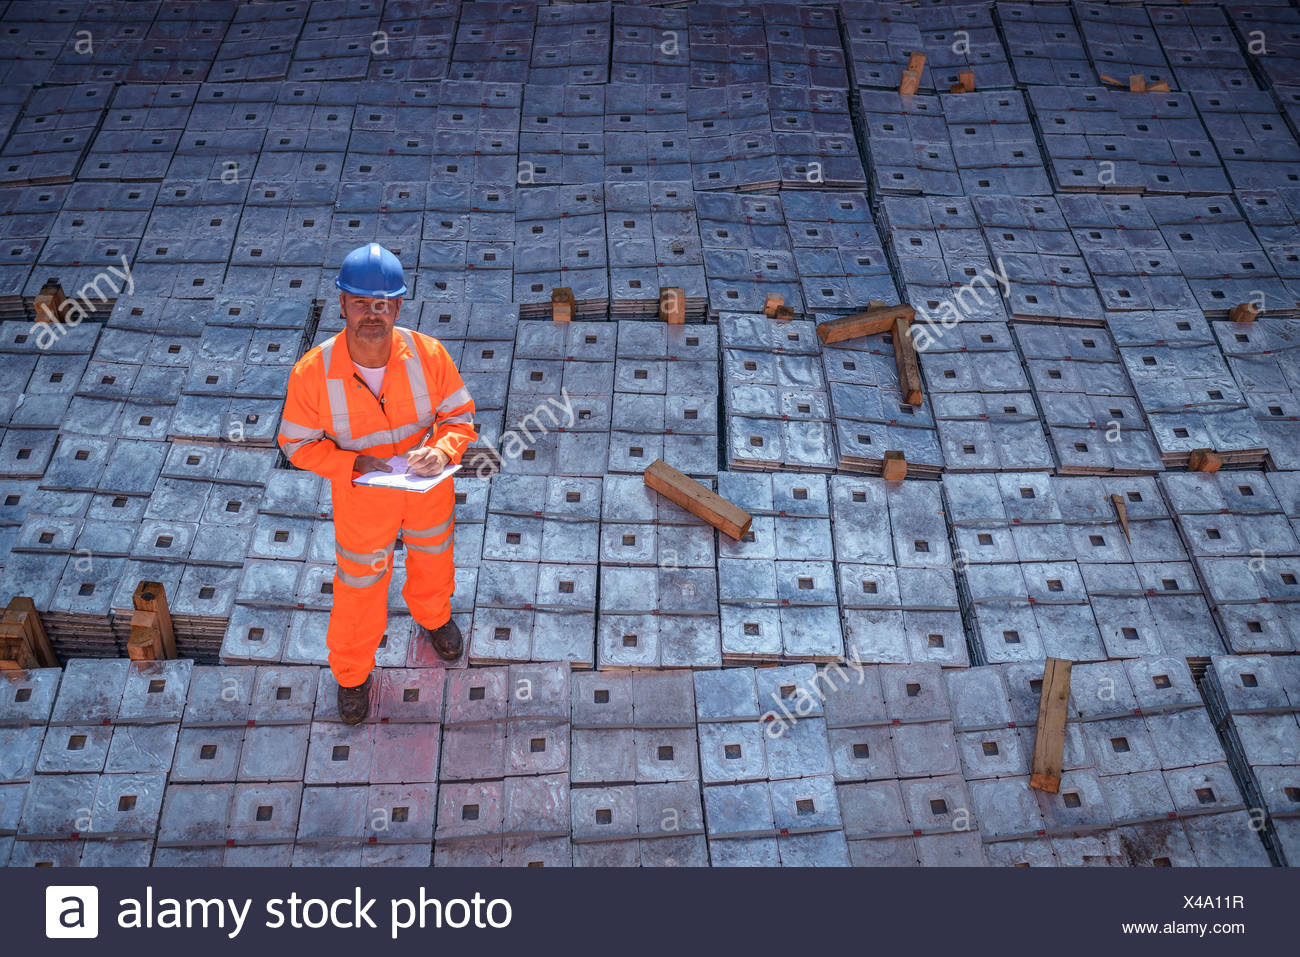 Worker in reflective workwear standing on metal alloy cargo in ship's hold, portrait - Stock Image